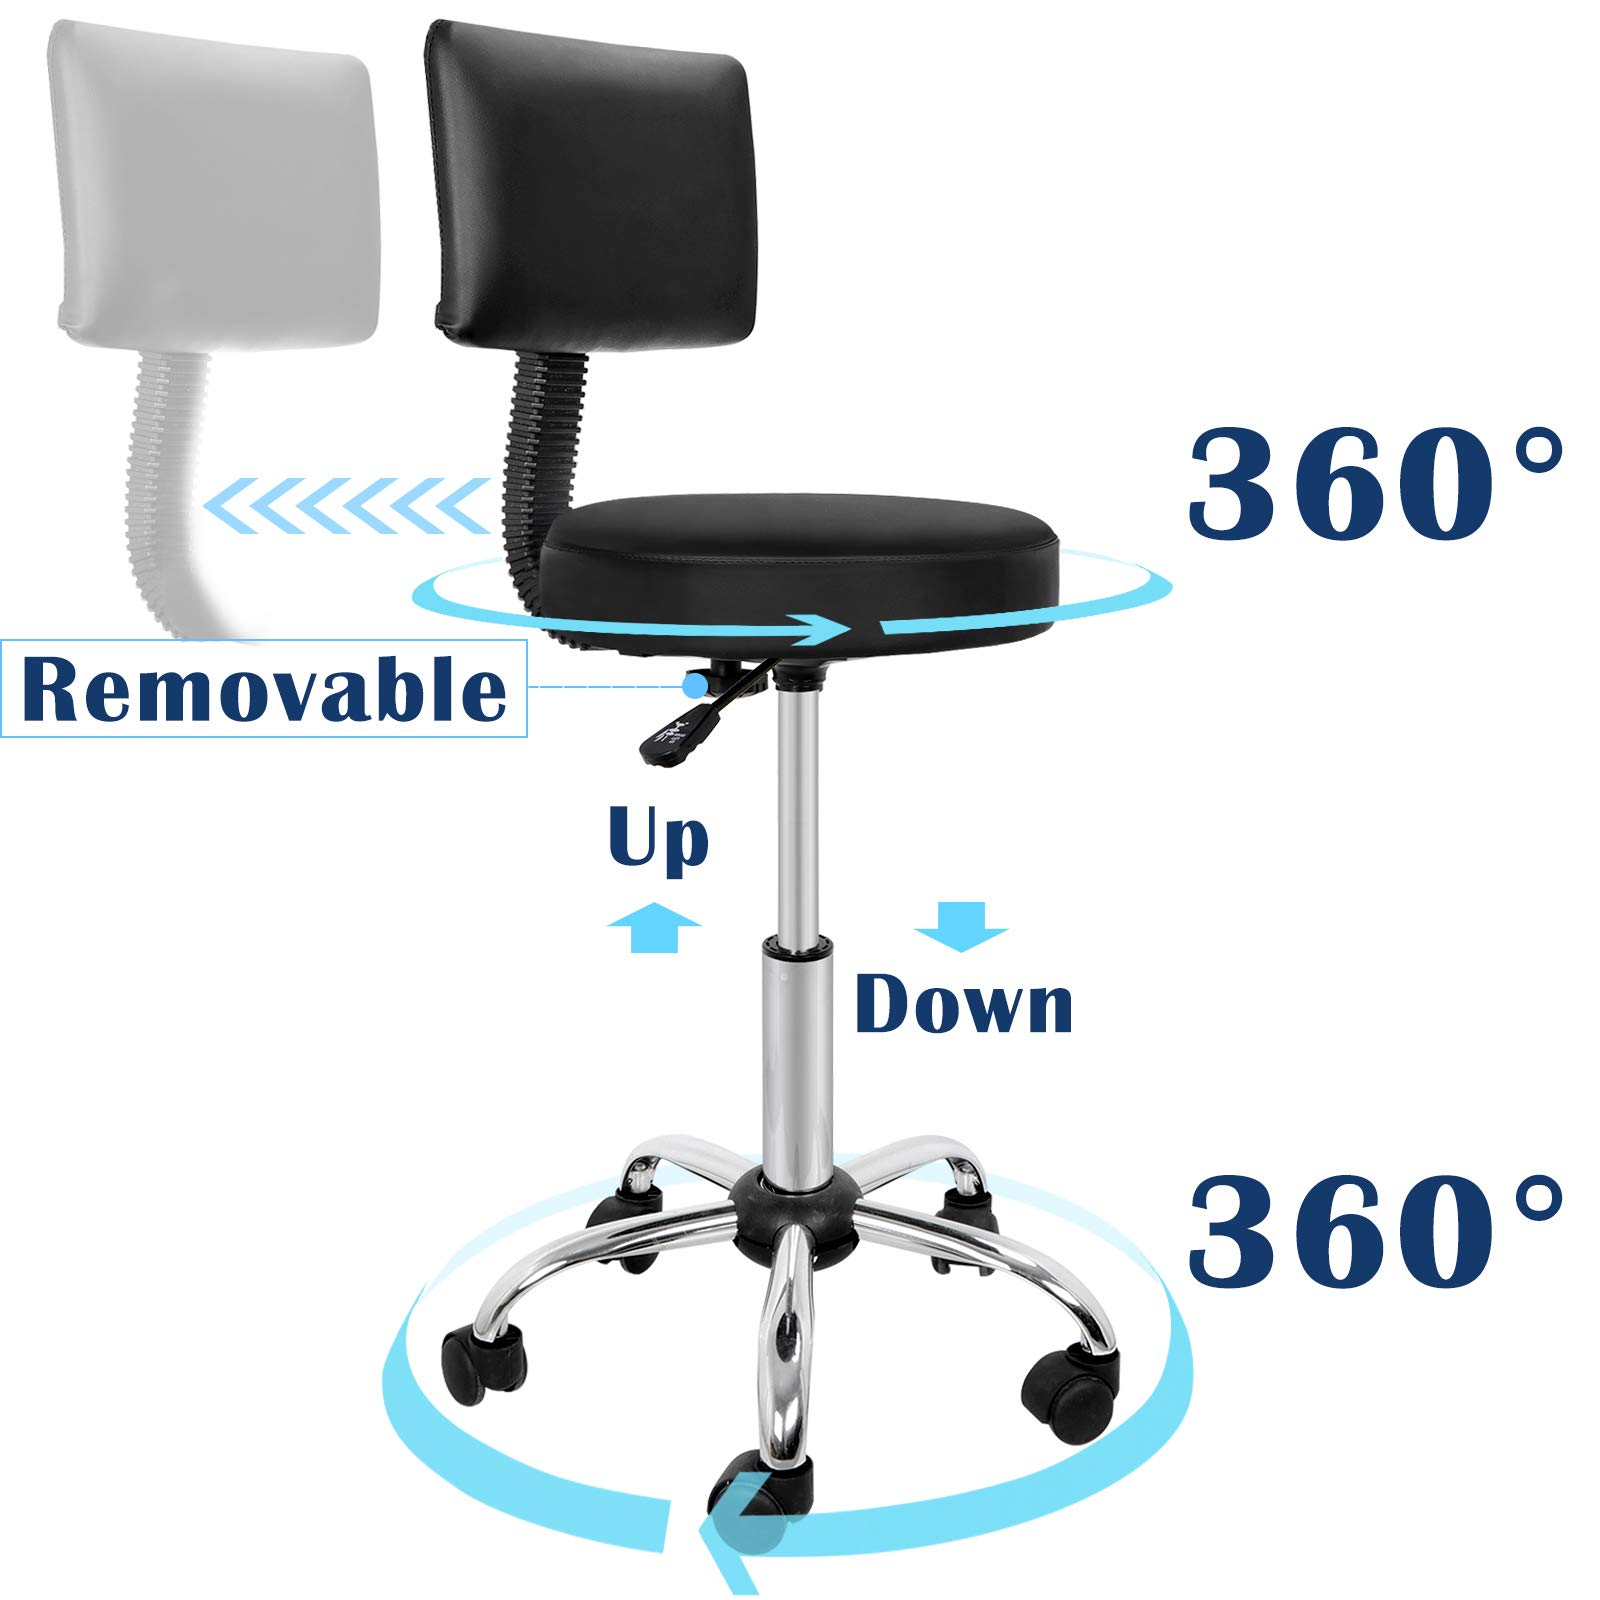 Hydraulic Swivel Medical Salon Stool Clinic Spa Massage Stool Rolling Manicure Chair W/Backrest for Tattoo Facial Spa by Nova Microdermabrasion